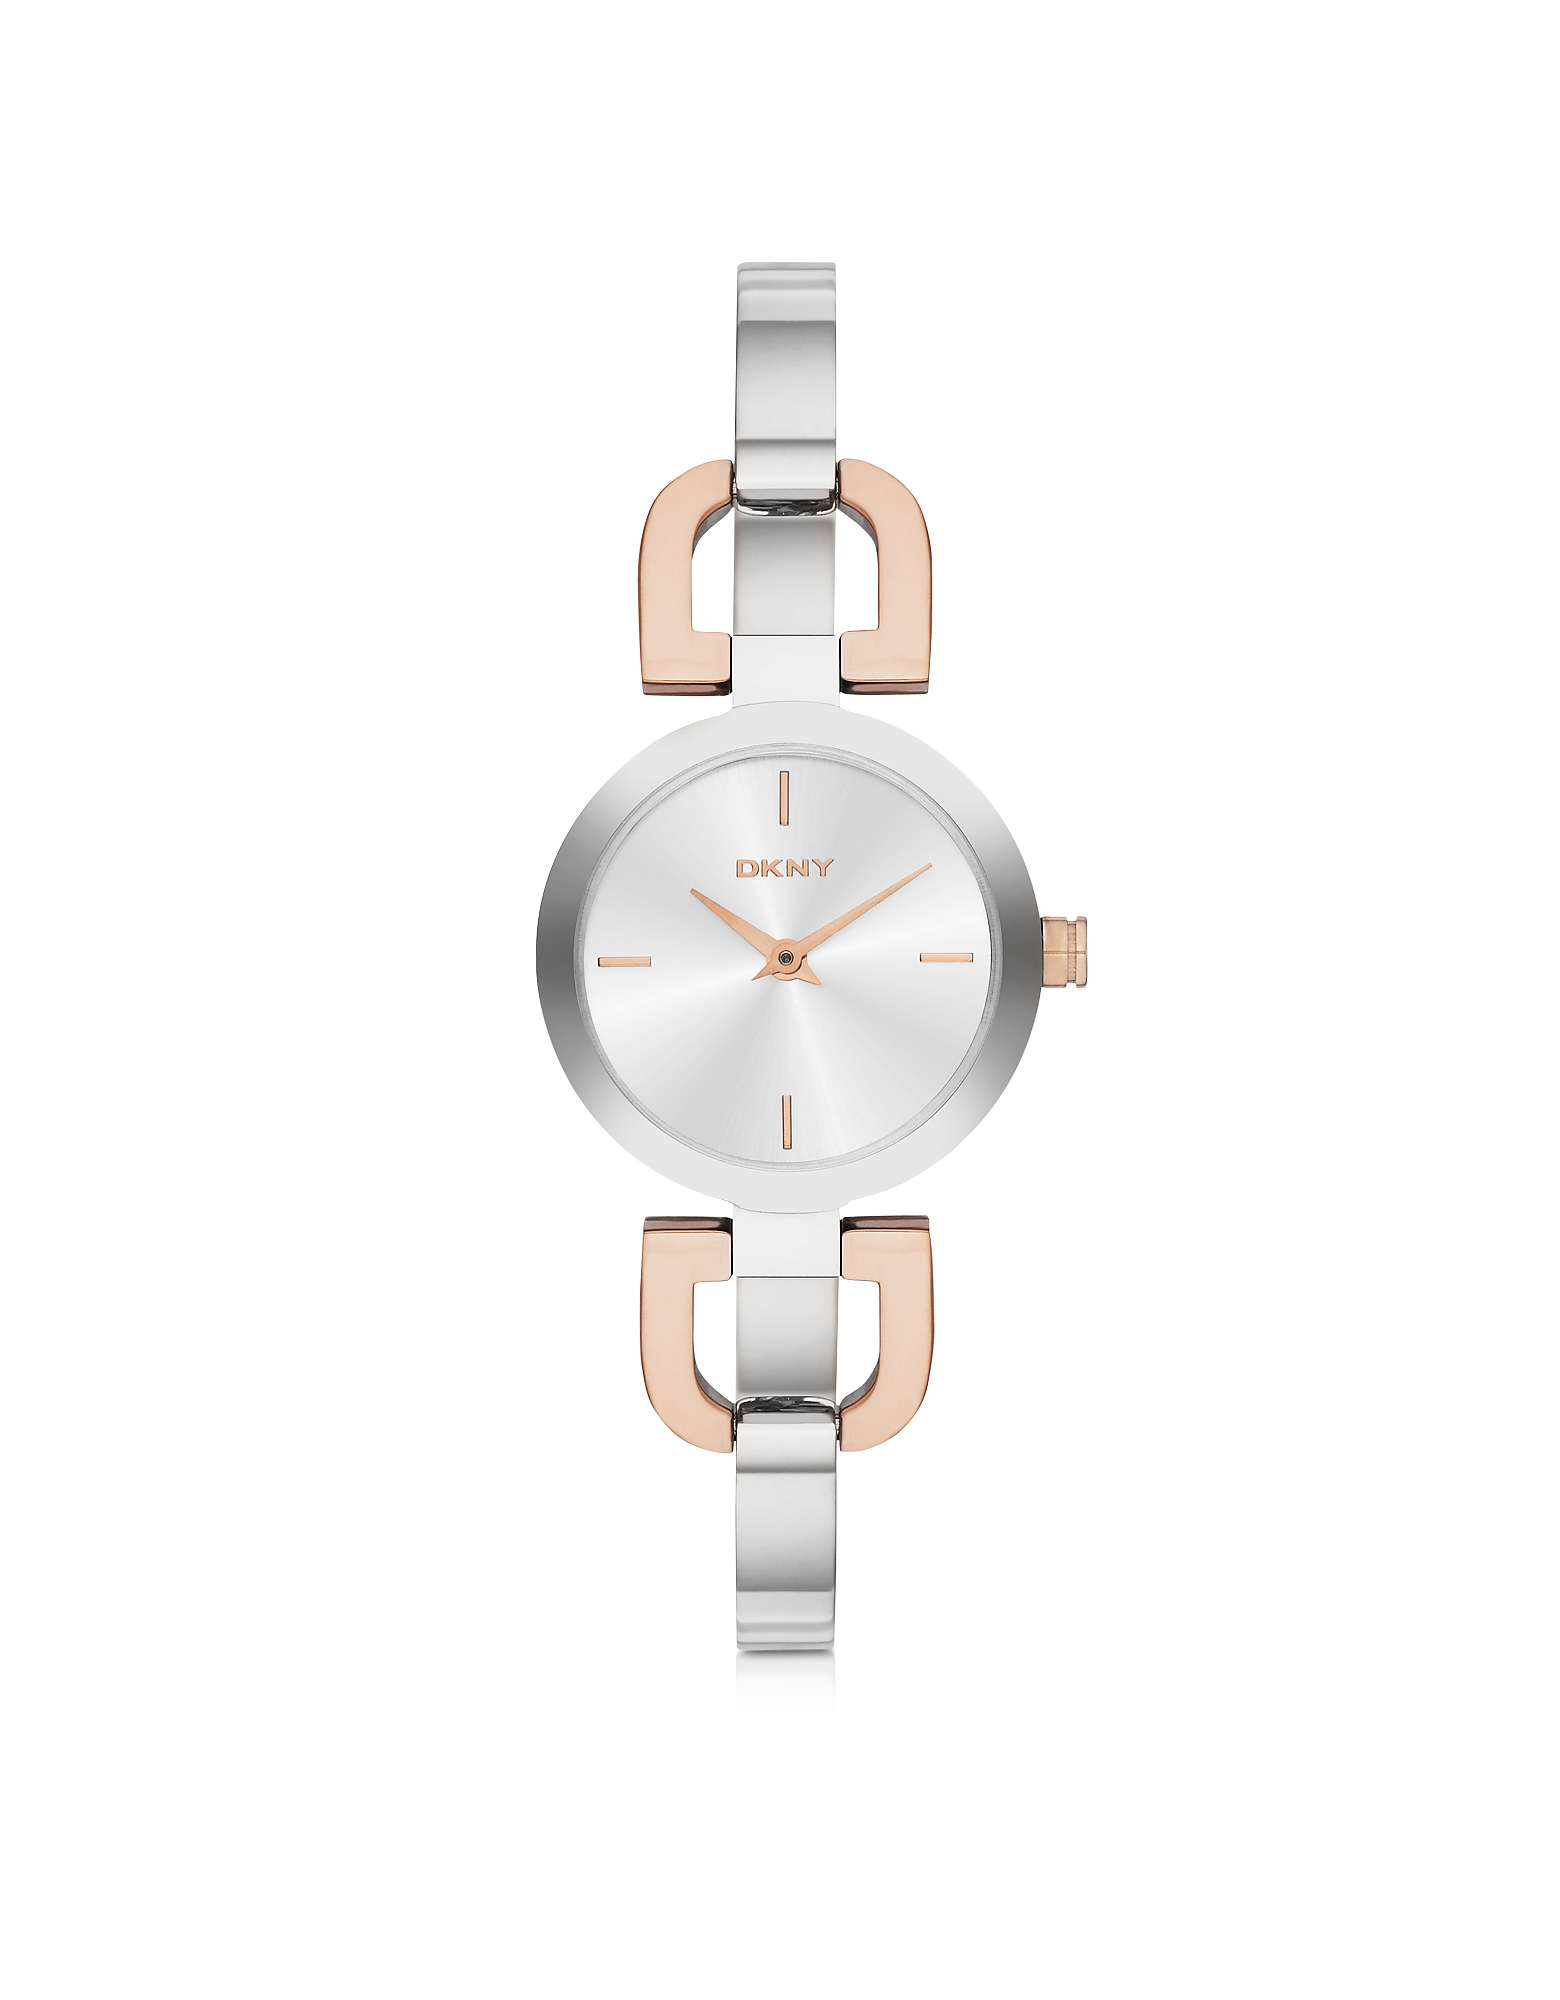 DKNY Women's Watches, Reade Two Tone Stainless Steel Women's Watch